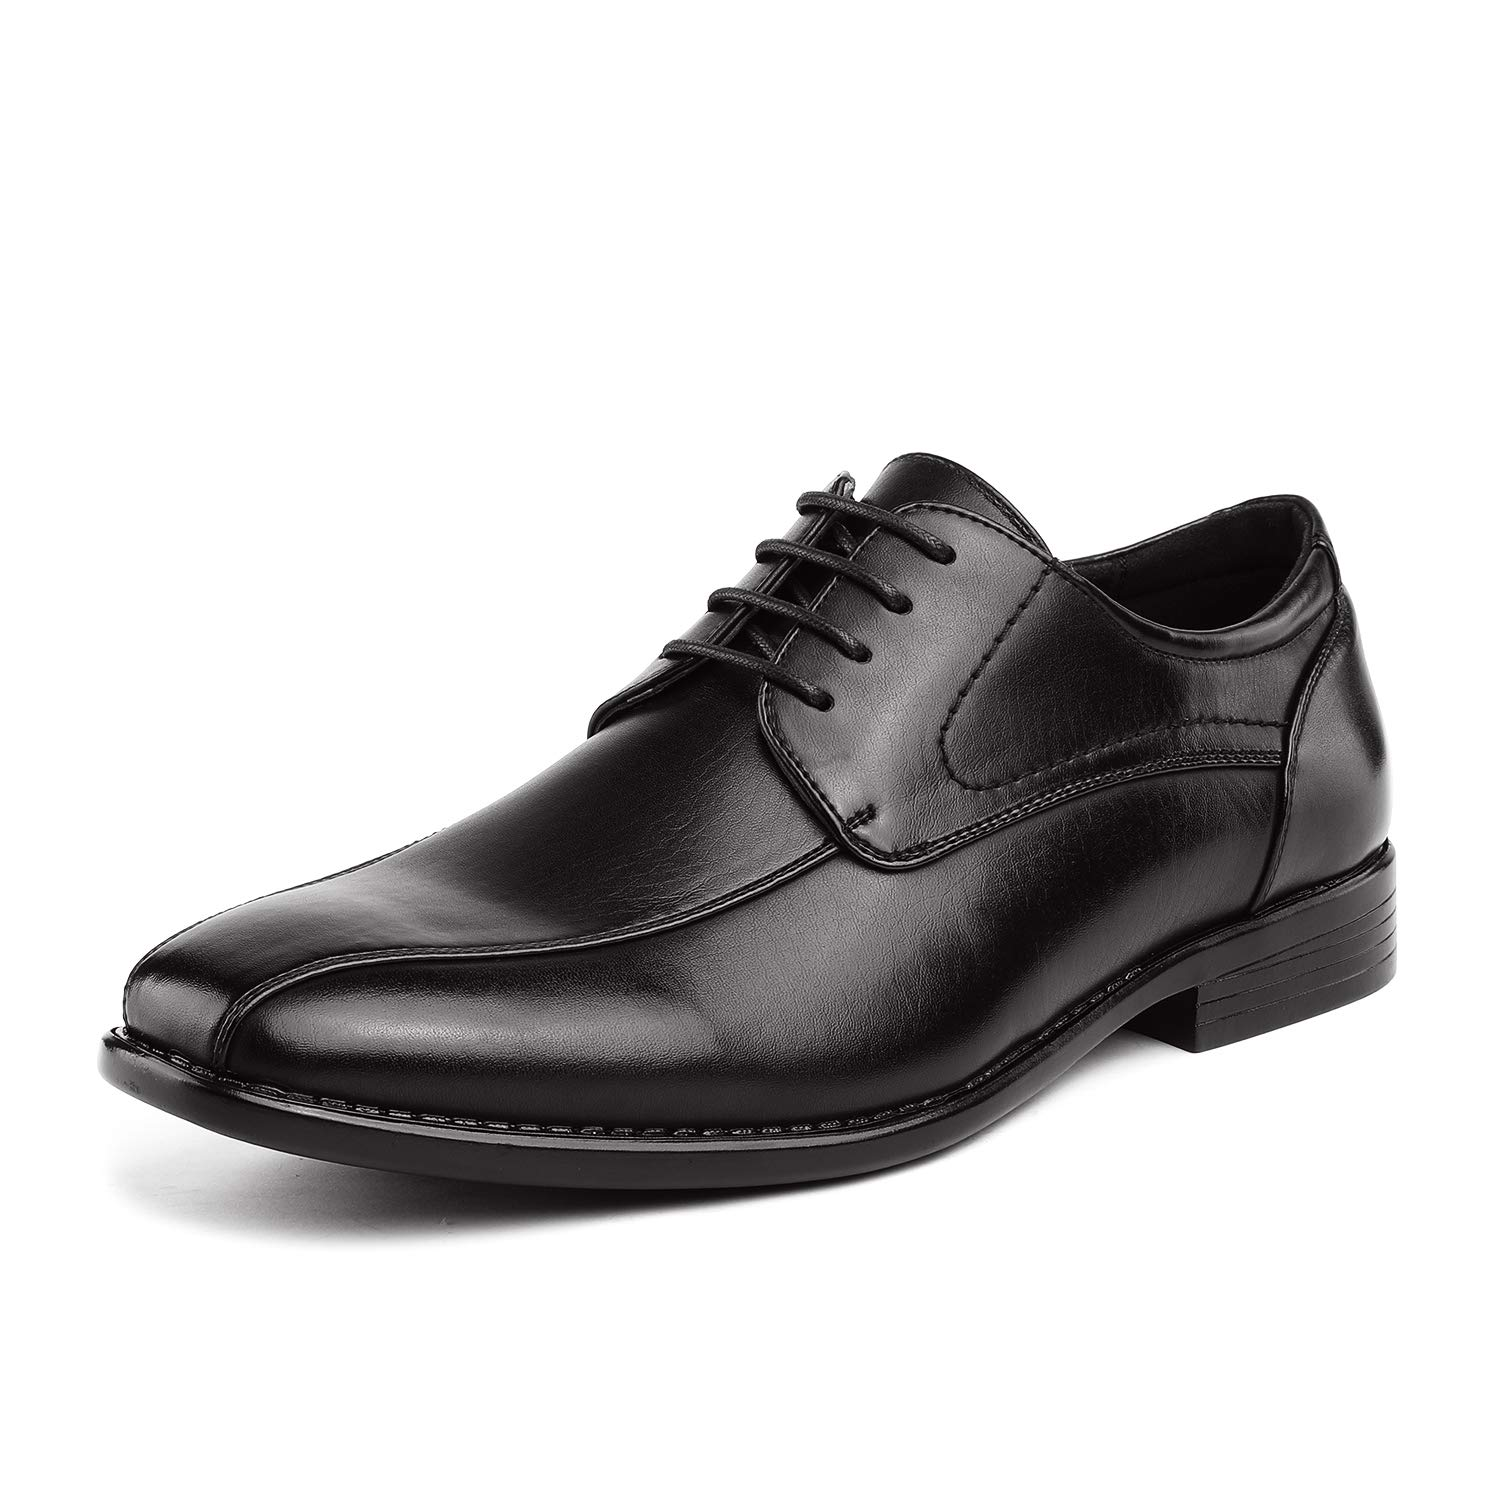 efed784e9a4bd Bruno Marc DP Men's Formal Modern Classic Lace Up Leather Lined Oxford  Dress Shoes: Amazon.ca: Shoes & Handbags